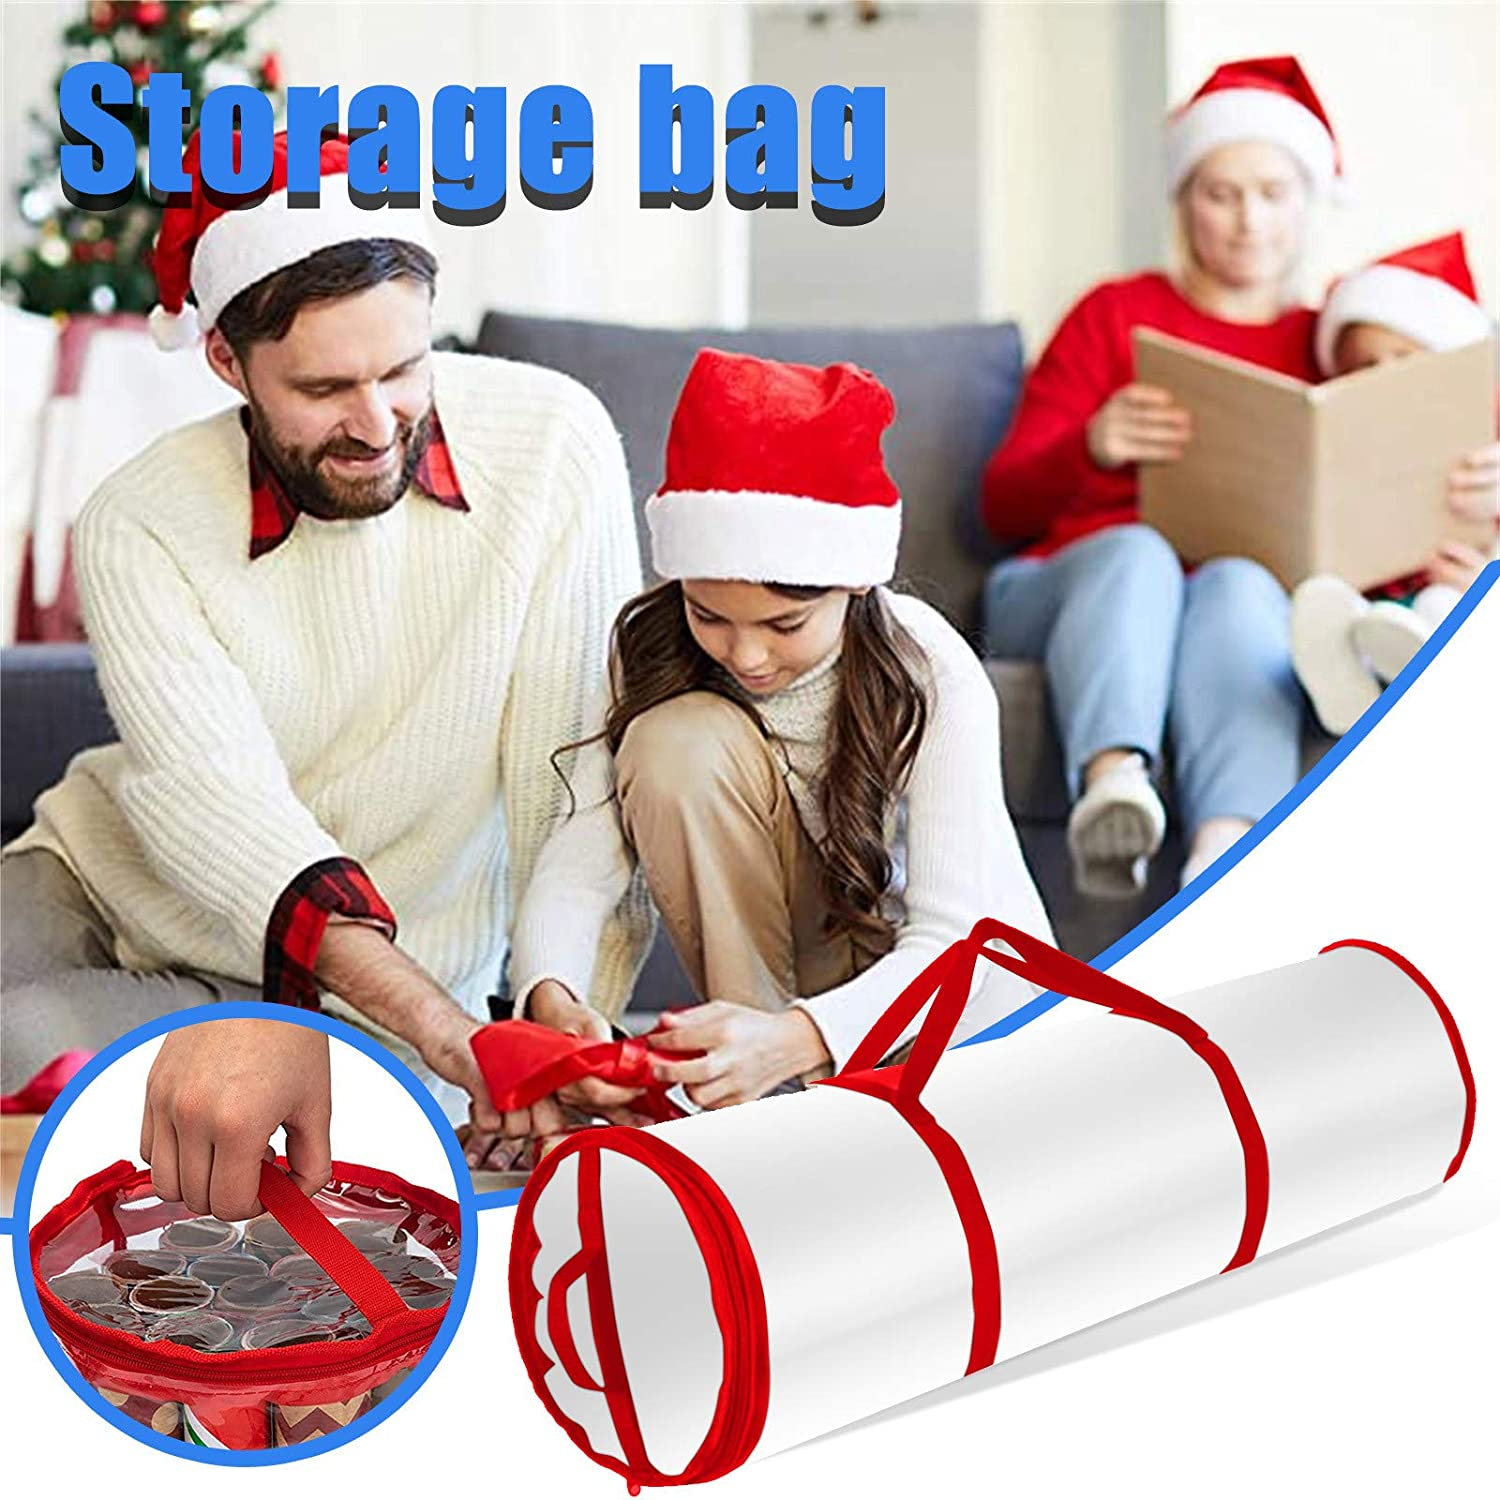 Water Proof PVC Fabric Fits 14 to 20 Rolls Slim Design Underbed Wrapping Paper Storage Container or Closet Storage Gift Wrap Organizer Bumplebee Christmas Wrapping Paper Storage Bag Clear